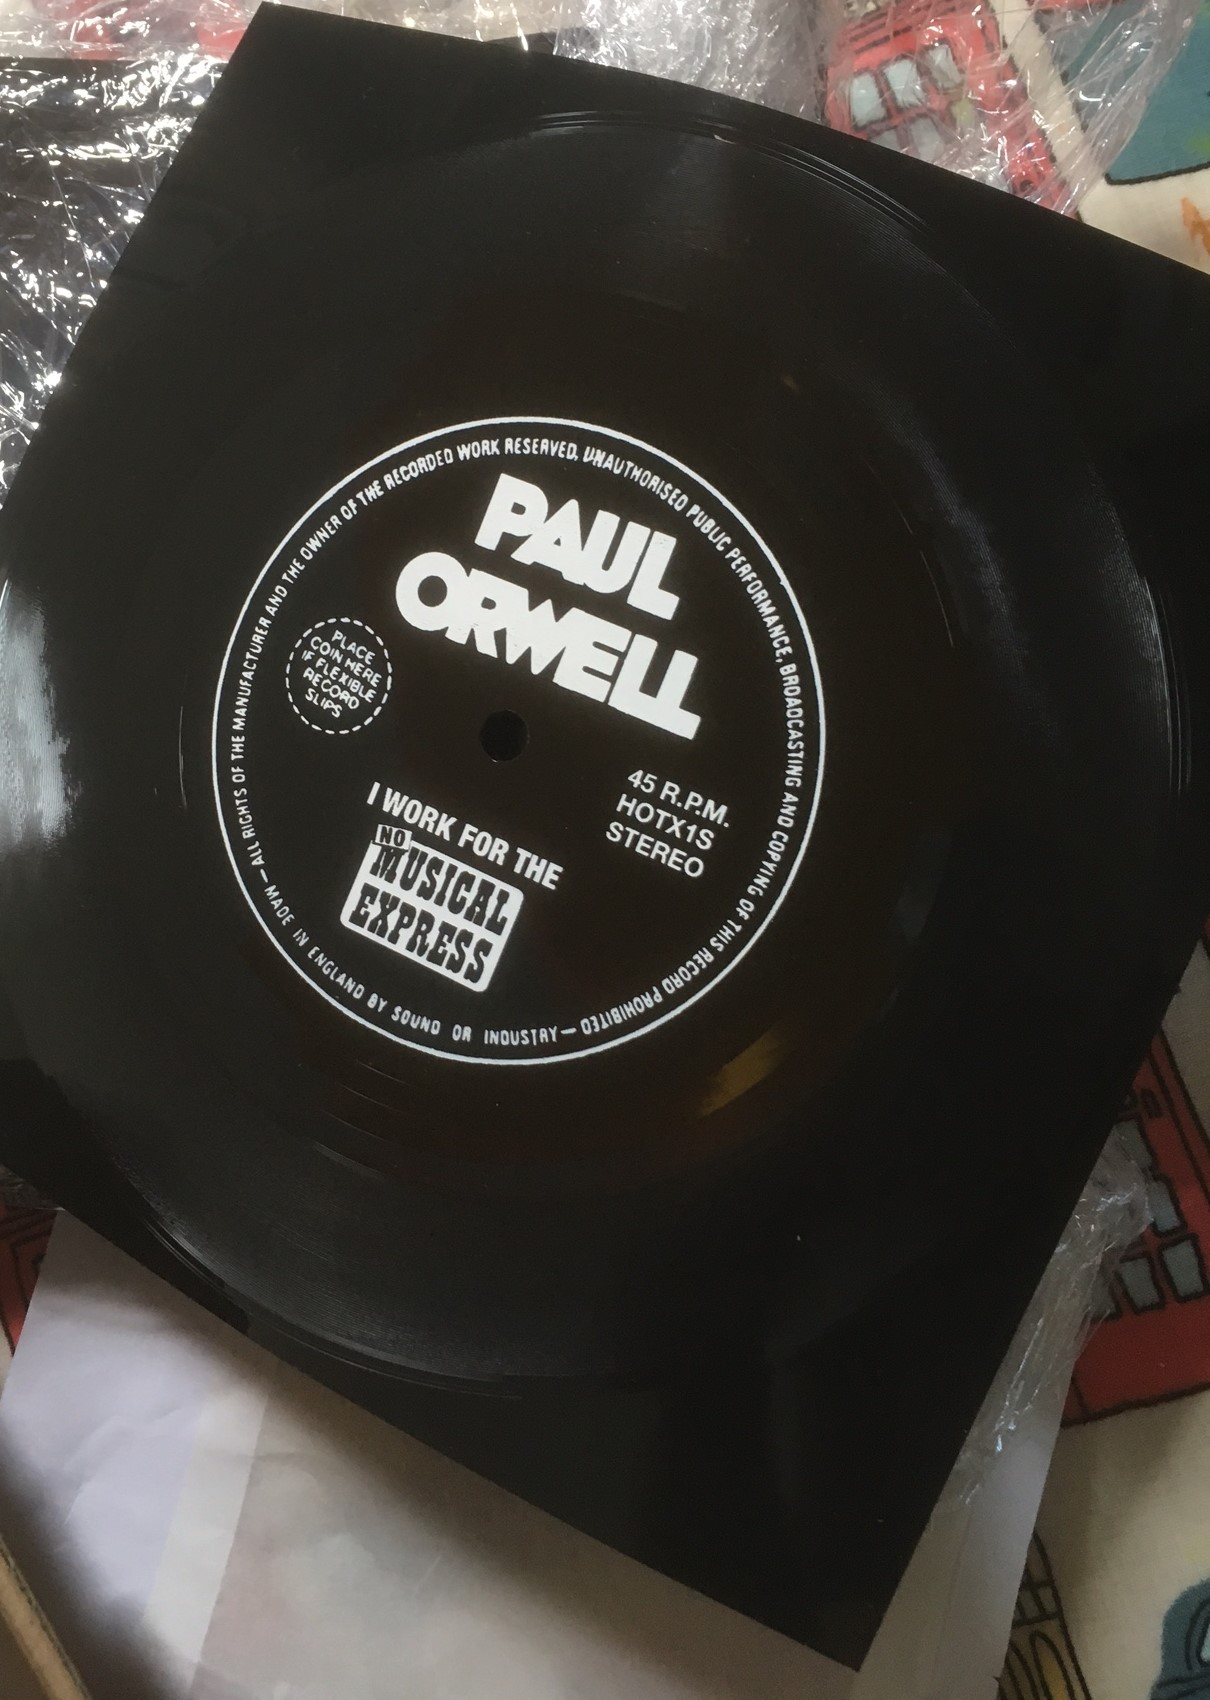 PAUL ORWELL I Work For The NME flexi